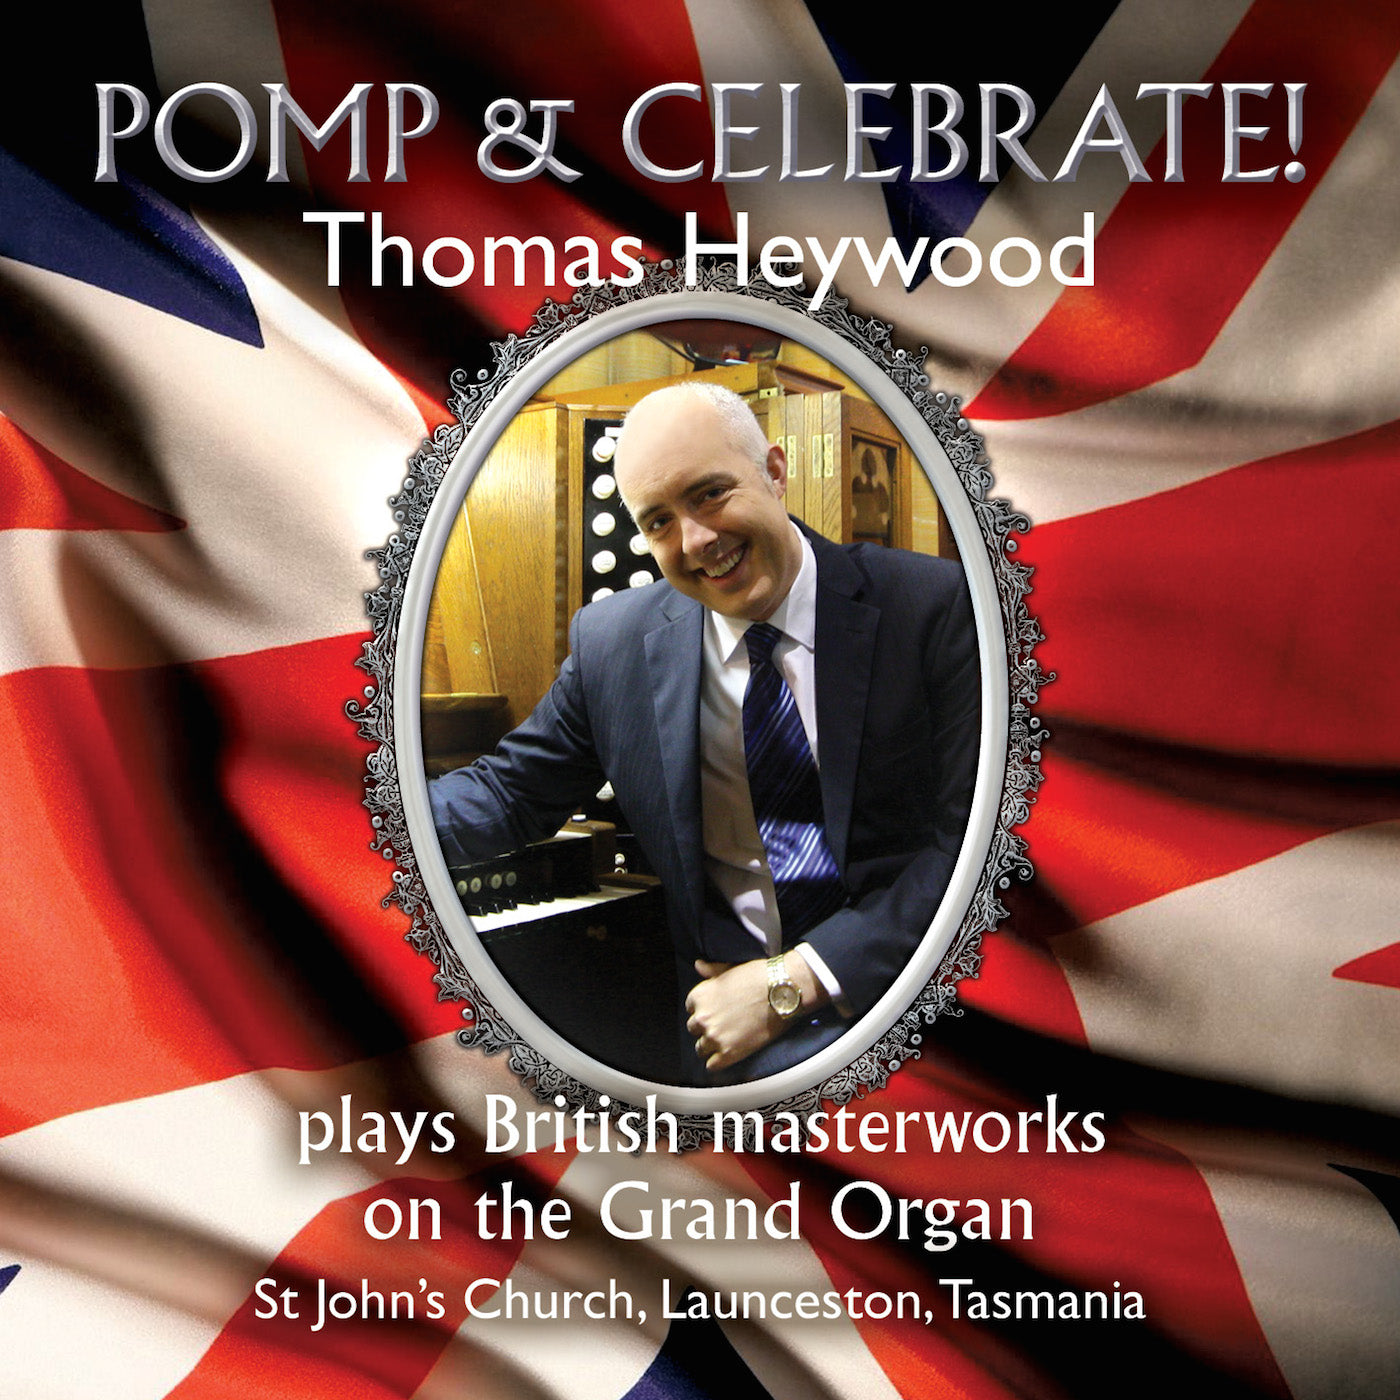 Pomp & Celebrate! (CD) | Thomas Heywood | Concert Organ International